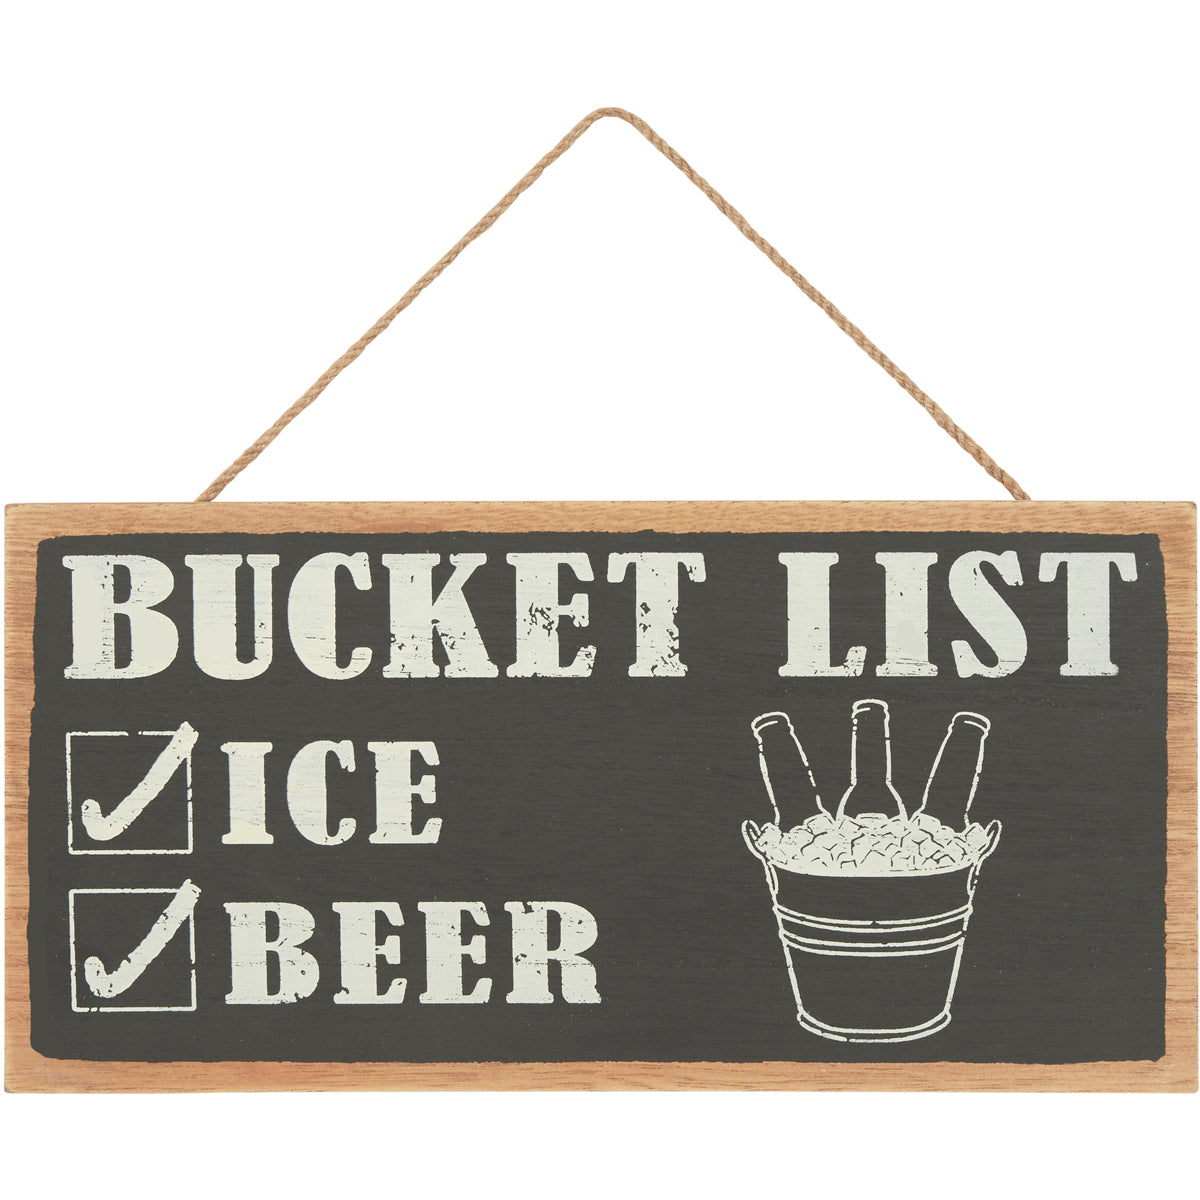 Wooden sign featuring Bucket List fun design. Beer and ice ticked off the list.